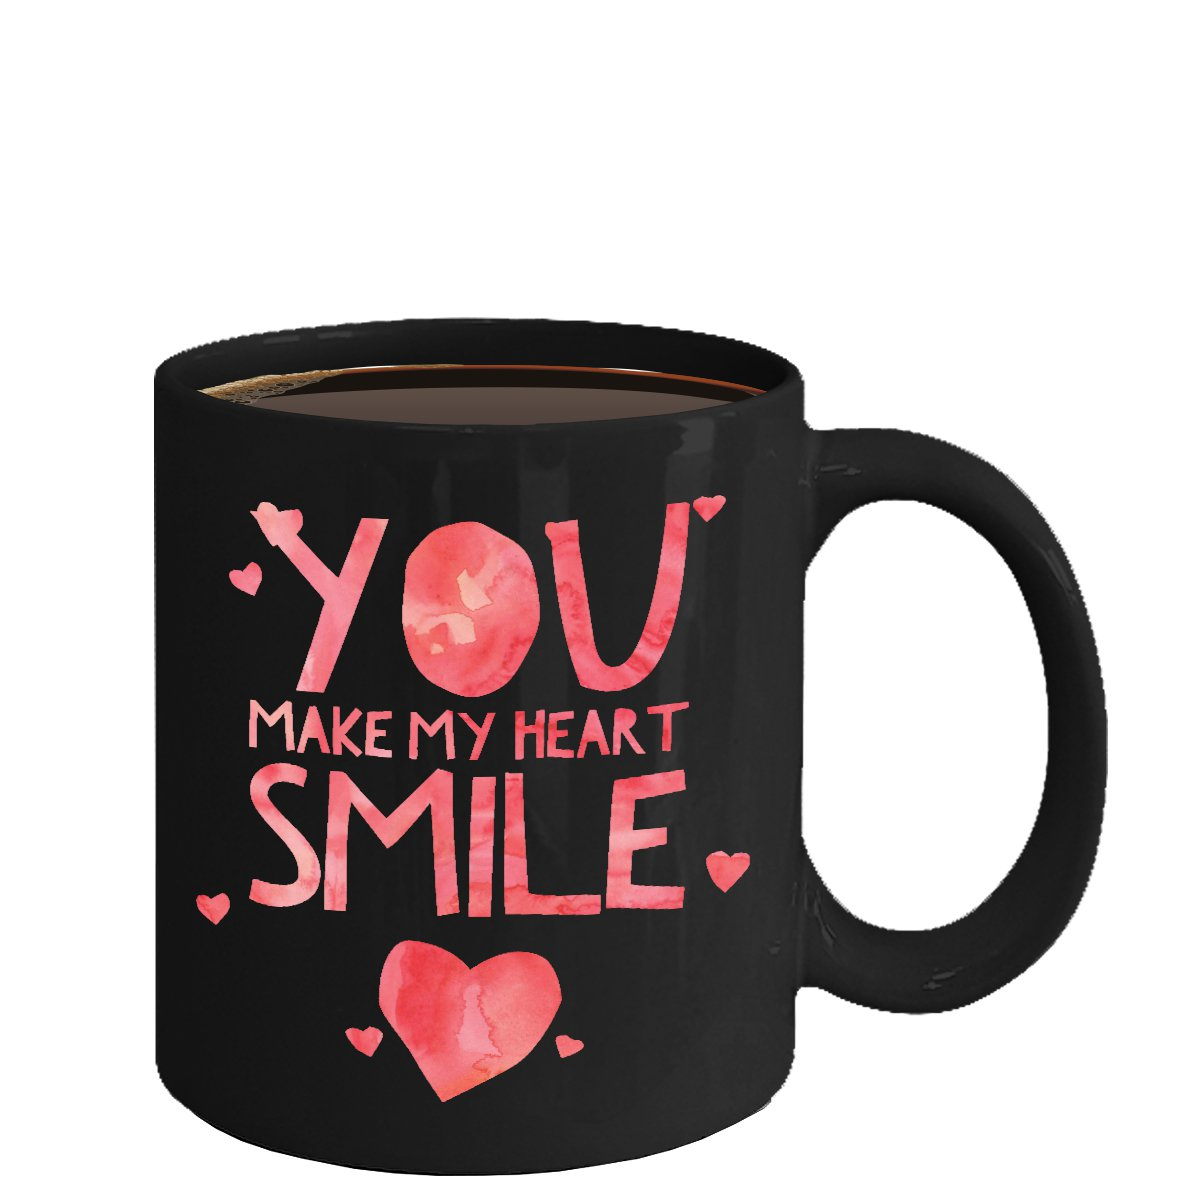 Love Ceramic Coffee Mug - You Make My Heart Smile - Cute Large Cup (Black) - Best Gift for Men,Women